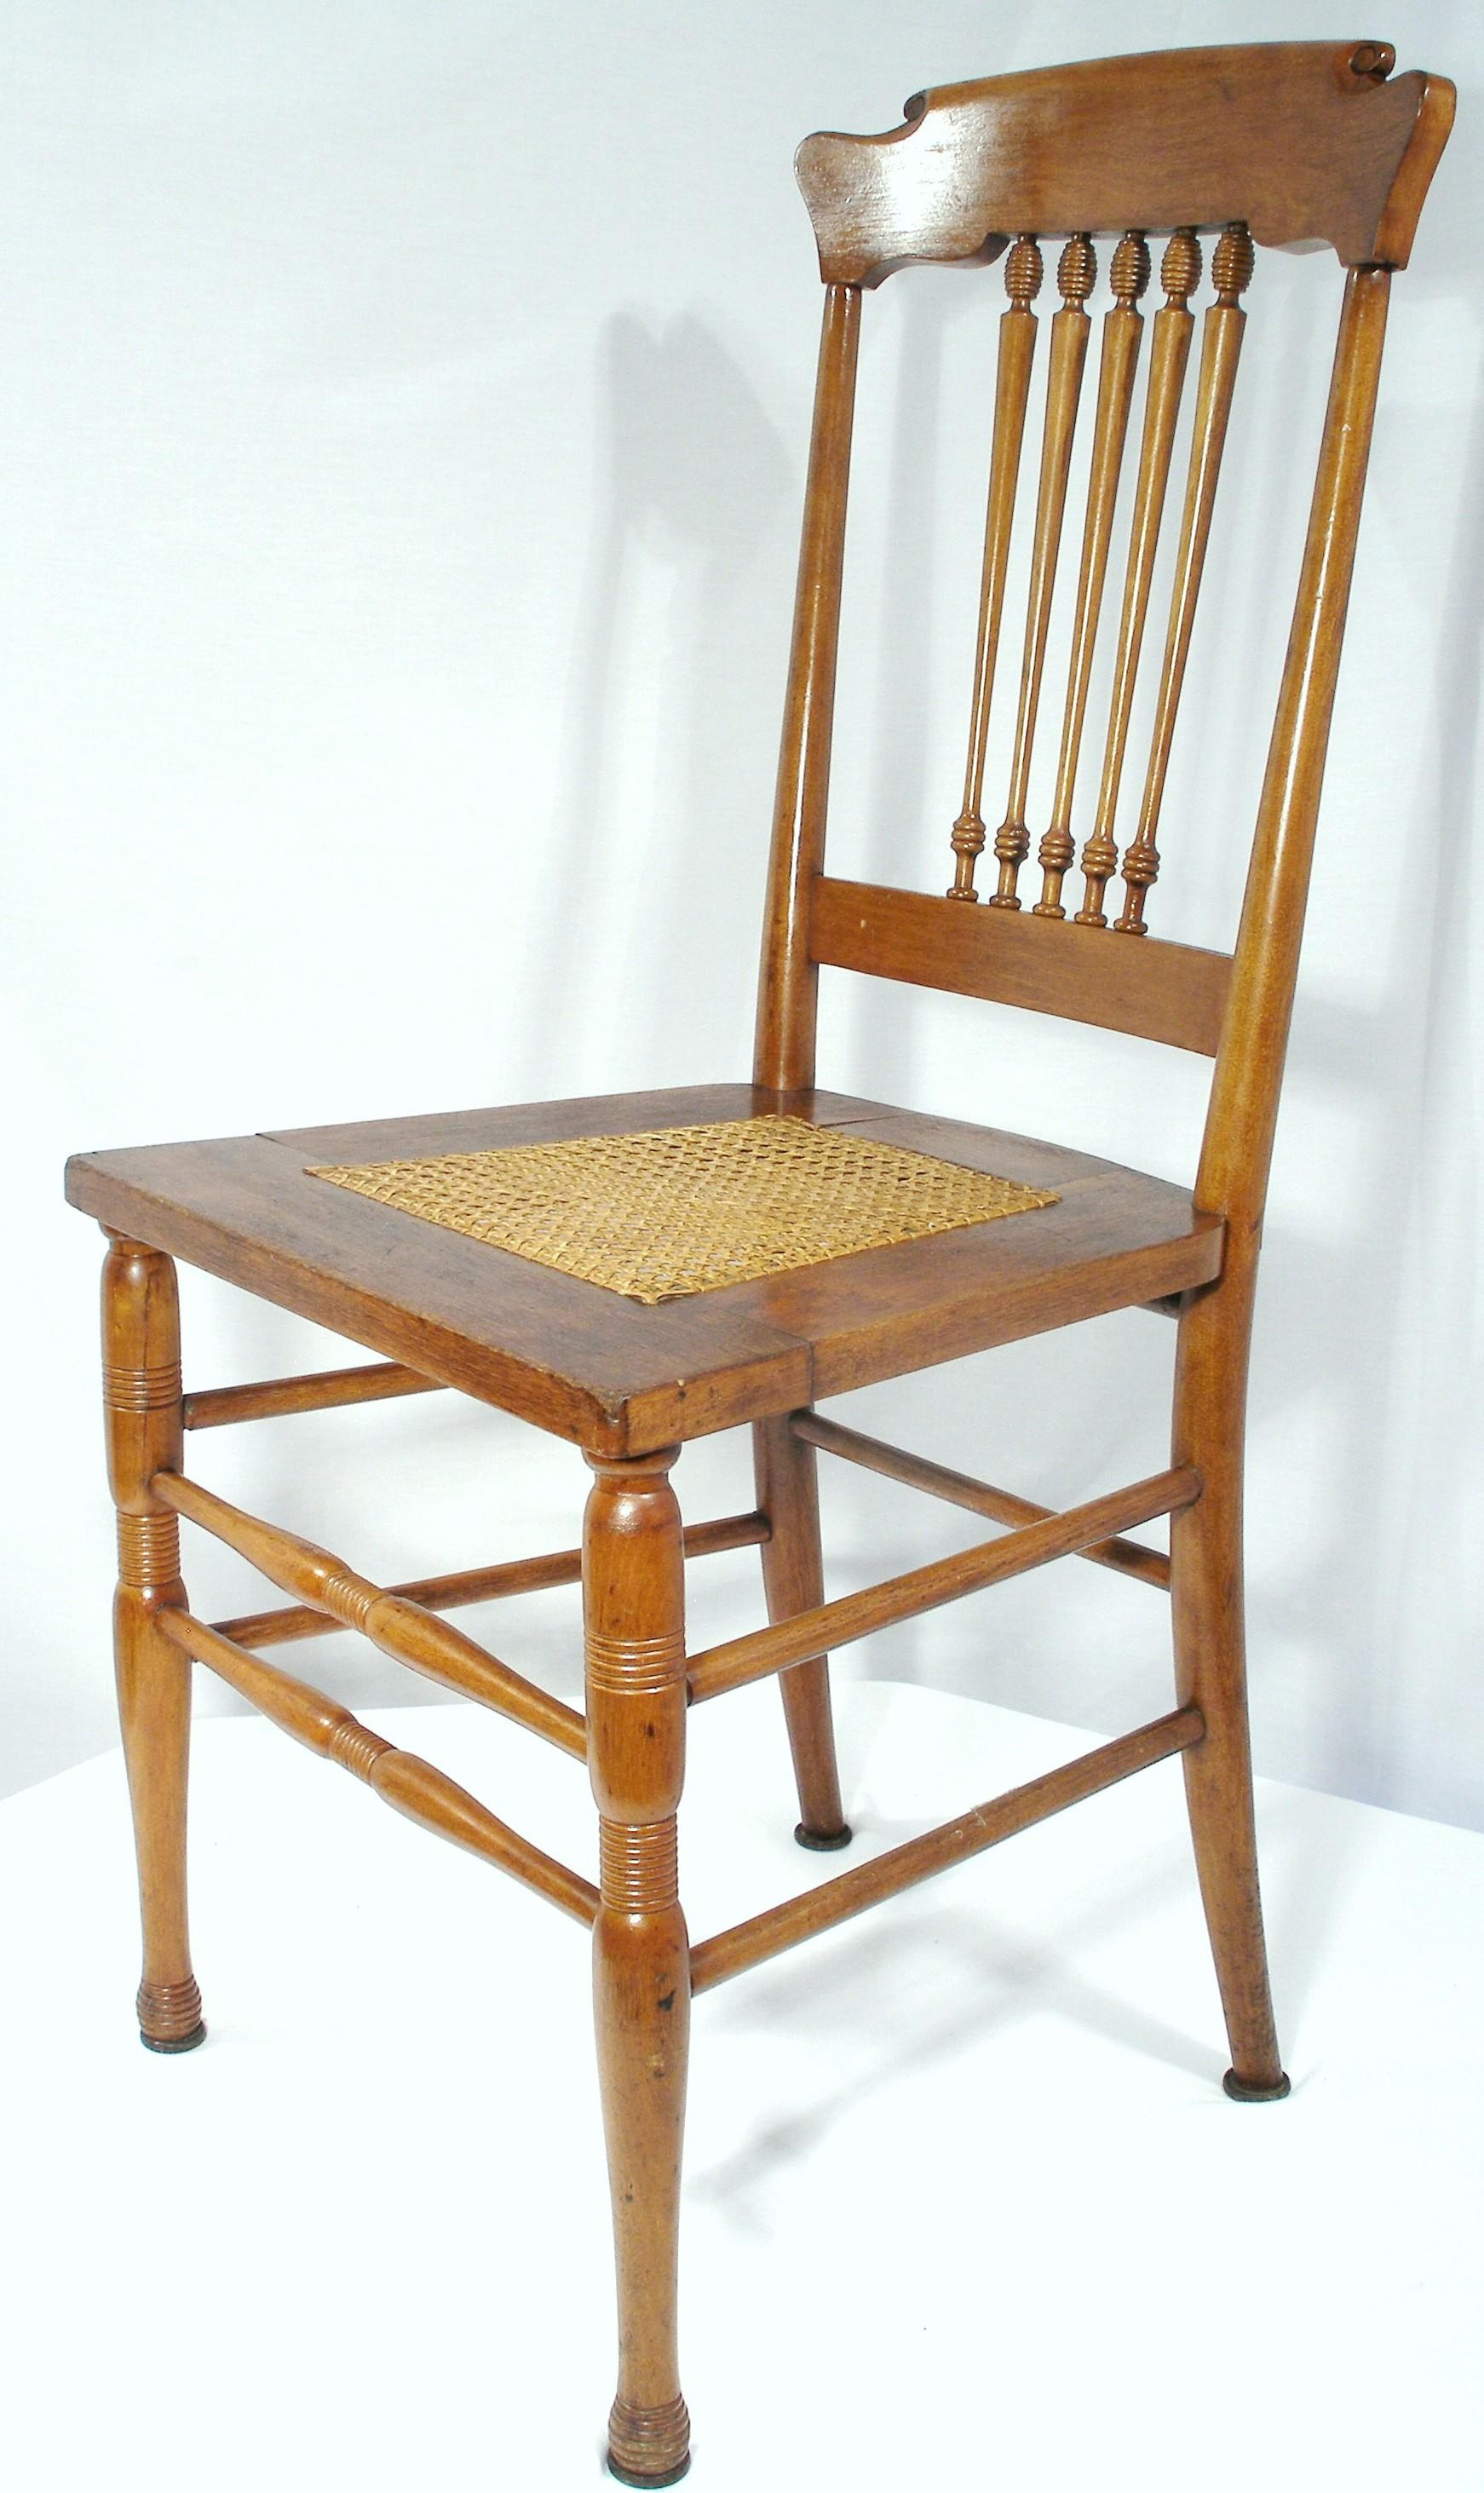 Antique Cane Chair Styles - Roll over large image to magnify click large image to zoom